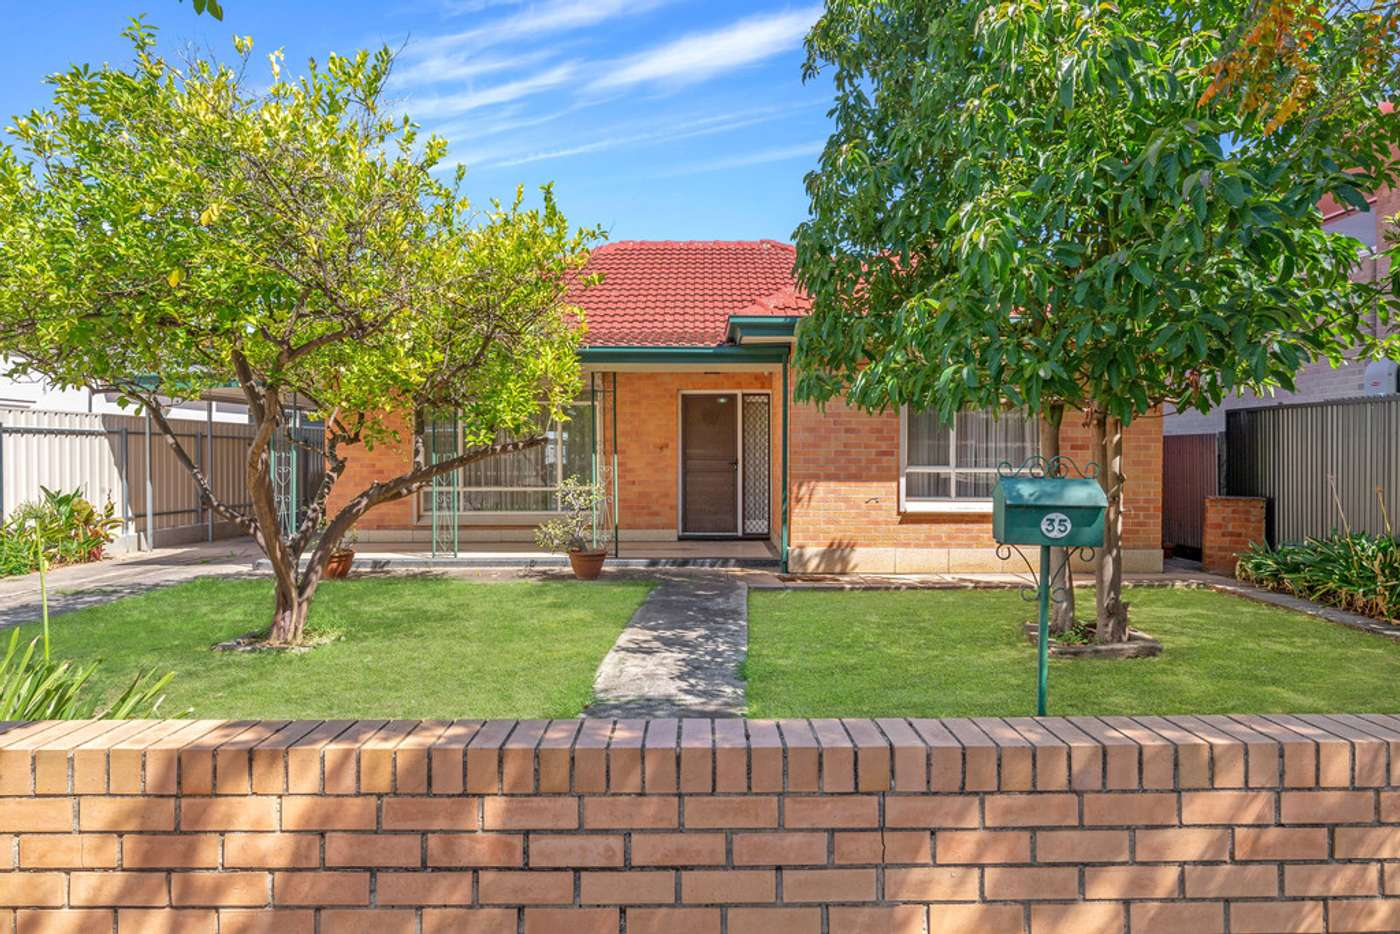 Main view of Homely house listing, 35 Elizabeth Street, Evandale SA 5069